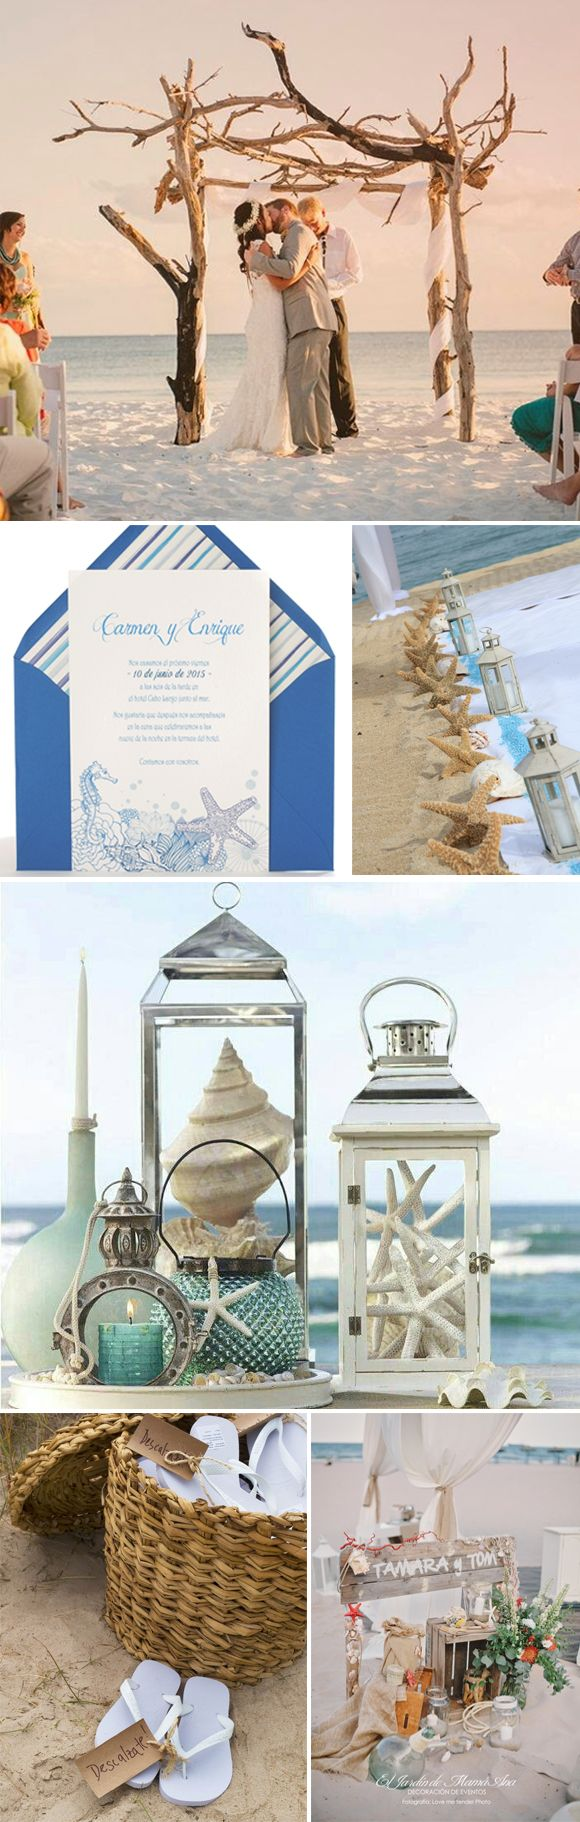 Decoracion de bodas en la playa